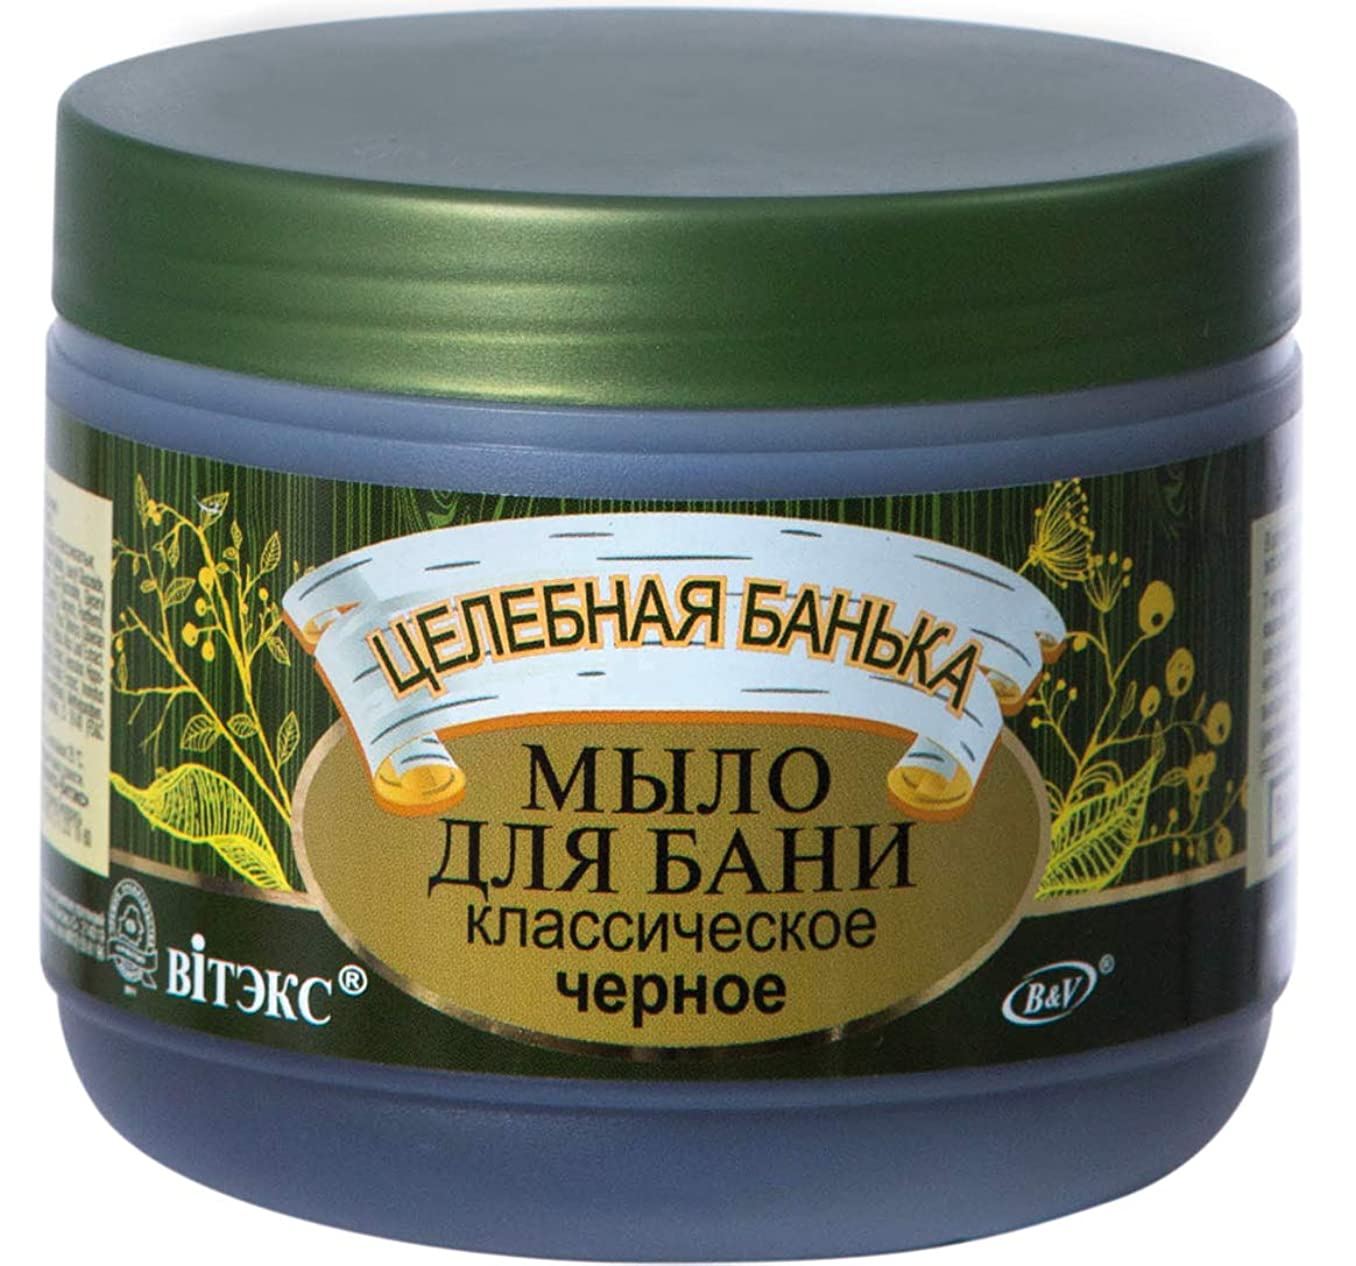 スキッパービーム最後にBIELITA & VITEX | Healing Bath | Classic Black Soap with 7 Natural Extracts